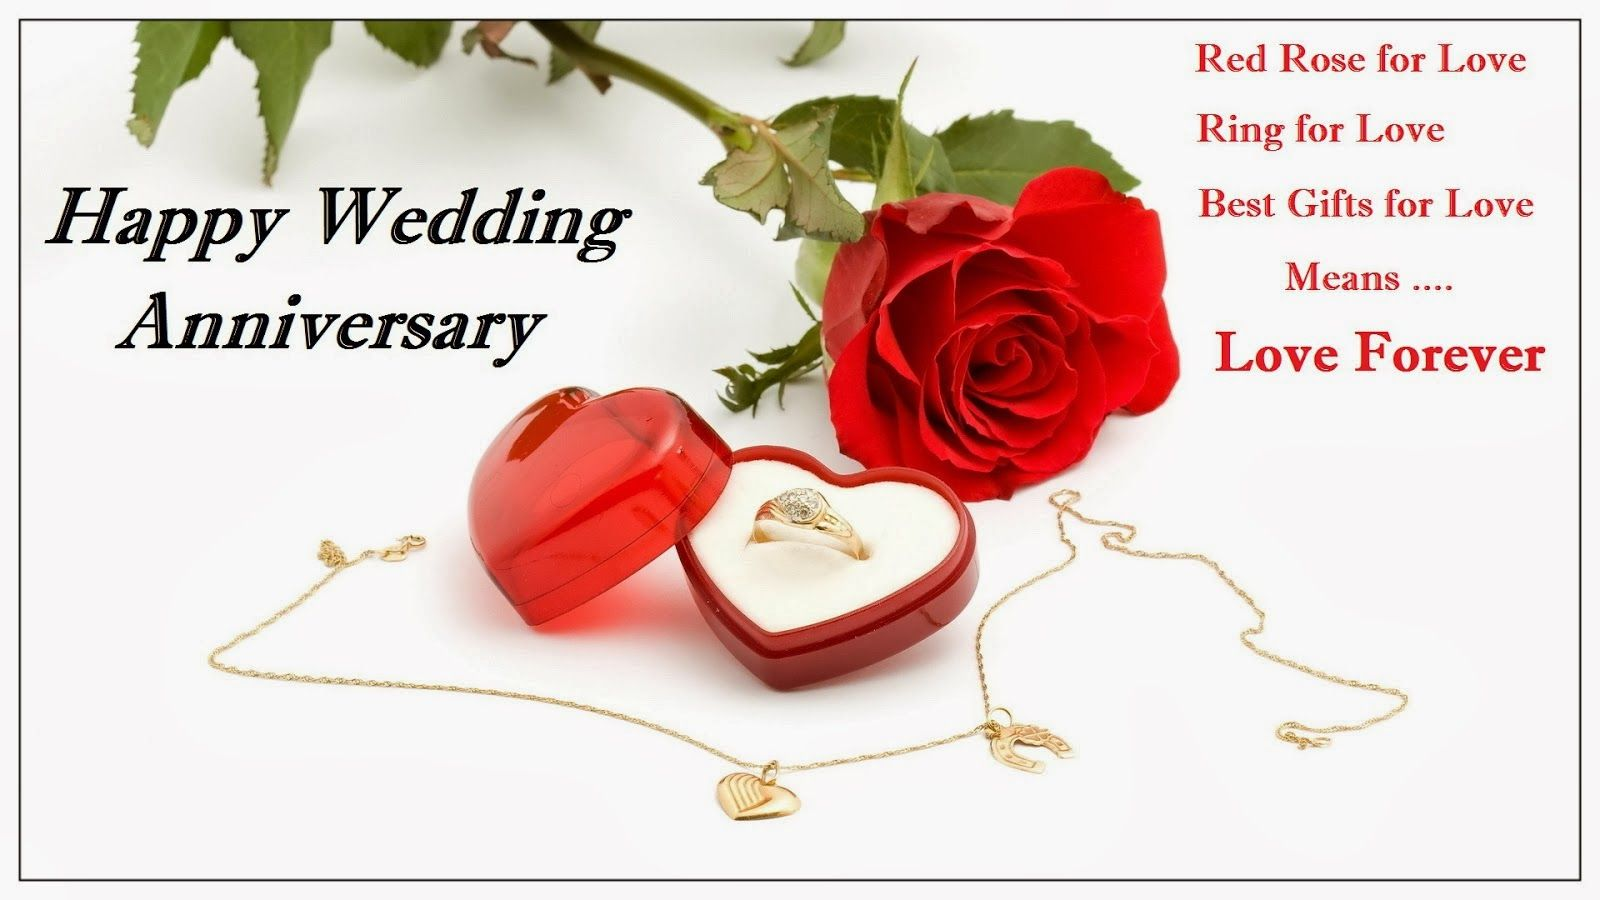 Happy Wedding Anniversary Wishes Images Happy Wedding Anniversary Cards Marriage Anniversary Cards Happy Wedding Anniversary Wishes